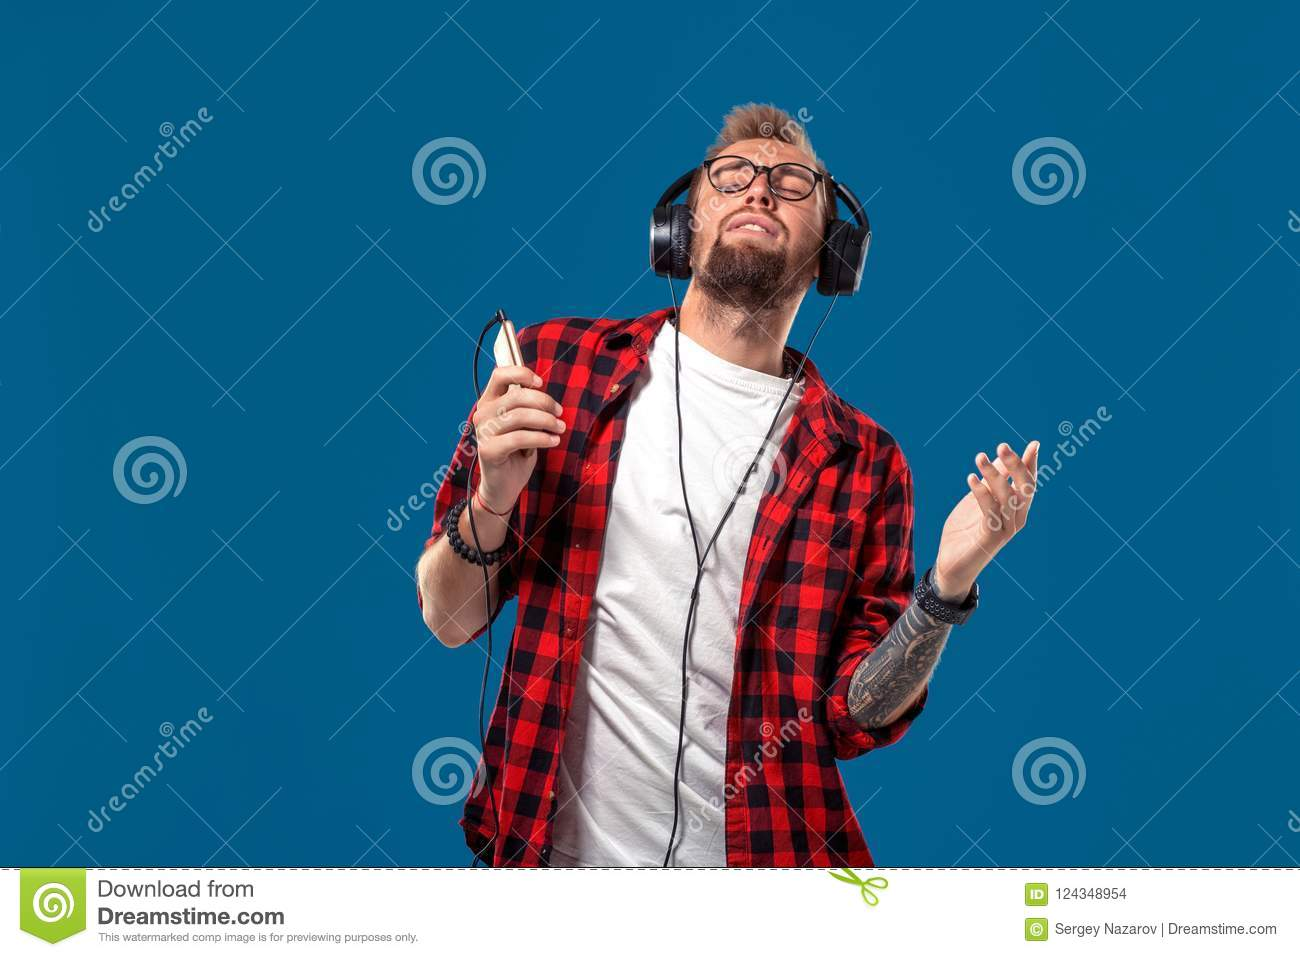 d5221a0f Happy young man listening to music with headphones. Handsome smiling guy in  checkered shirt with